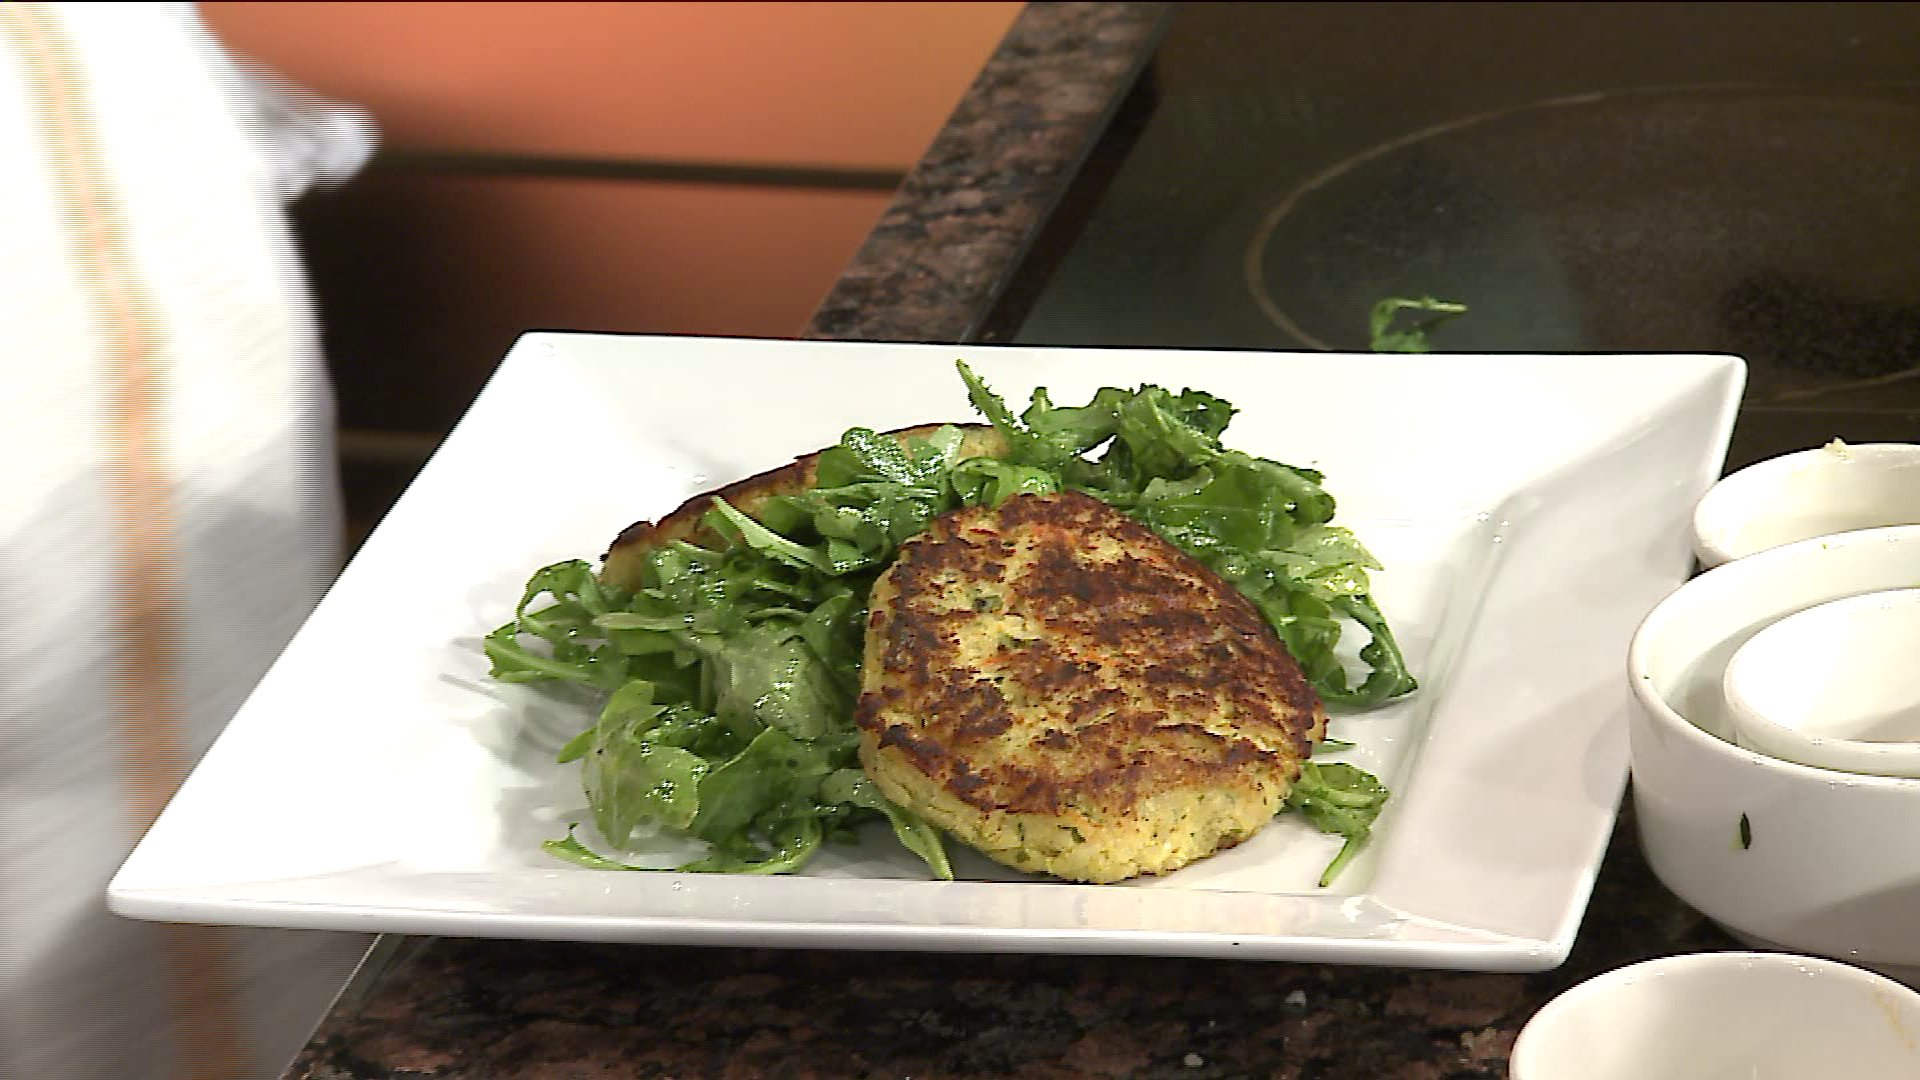 How To Make Healthy, Easy Quinoa & Zucchini Cakes